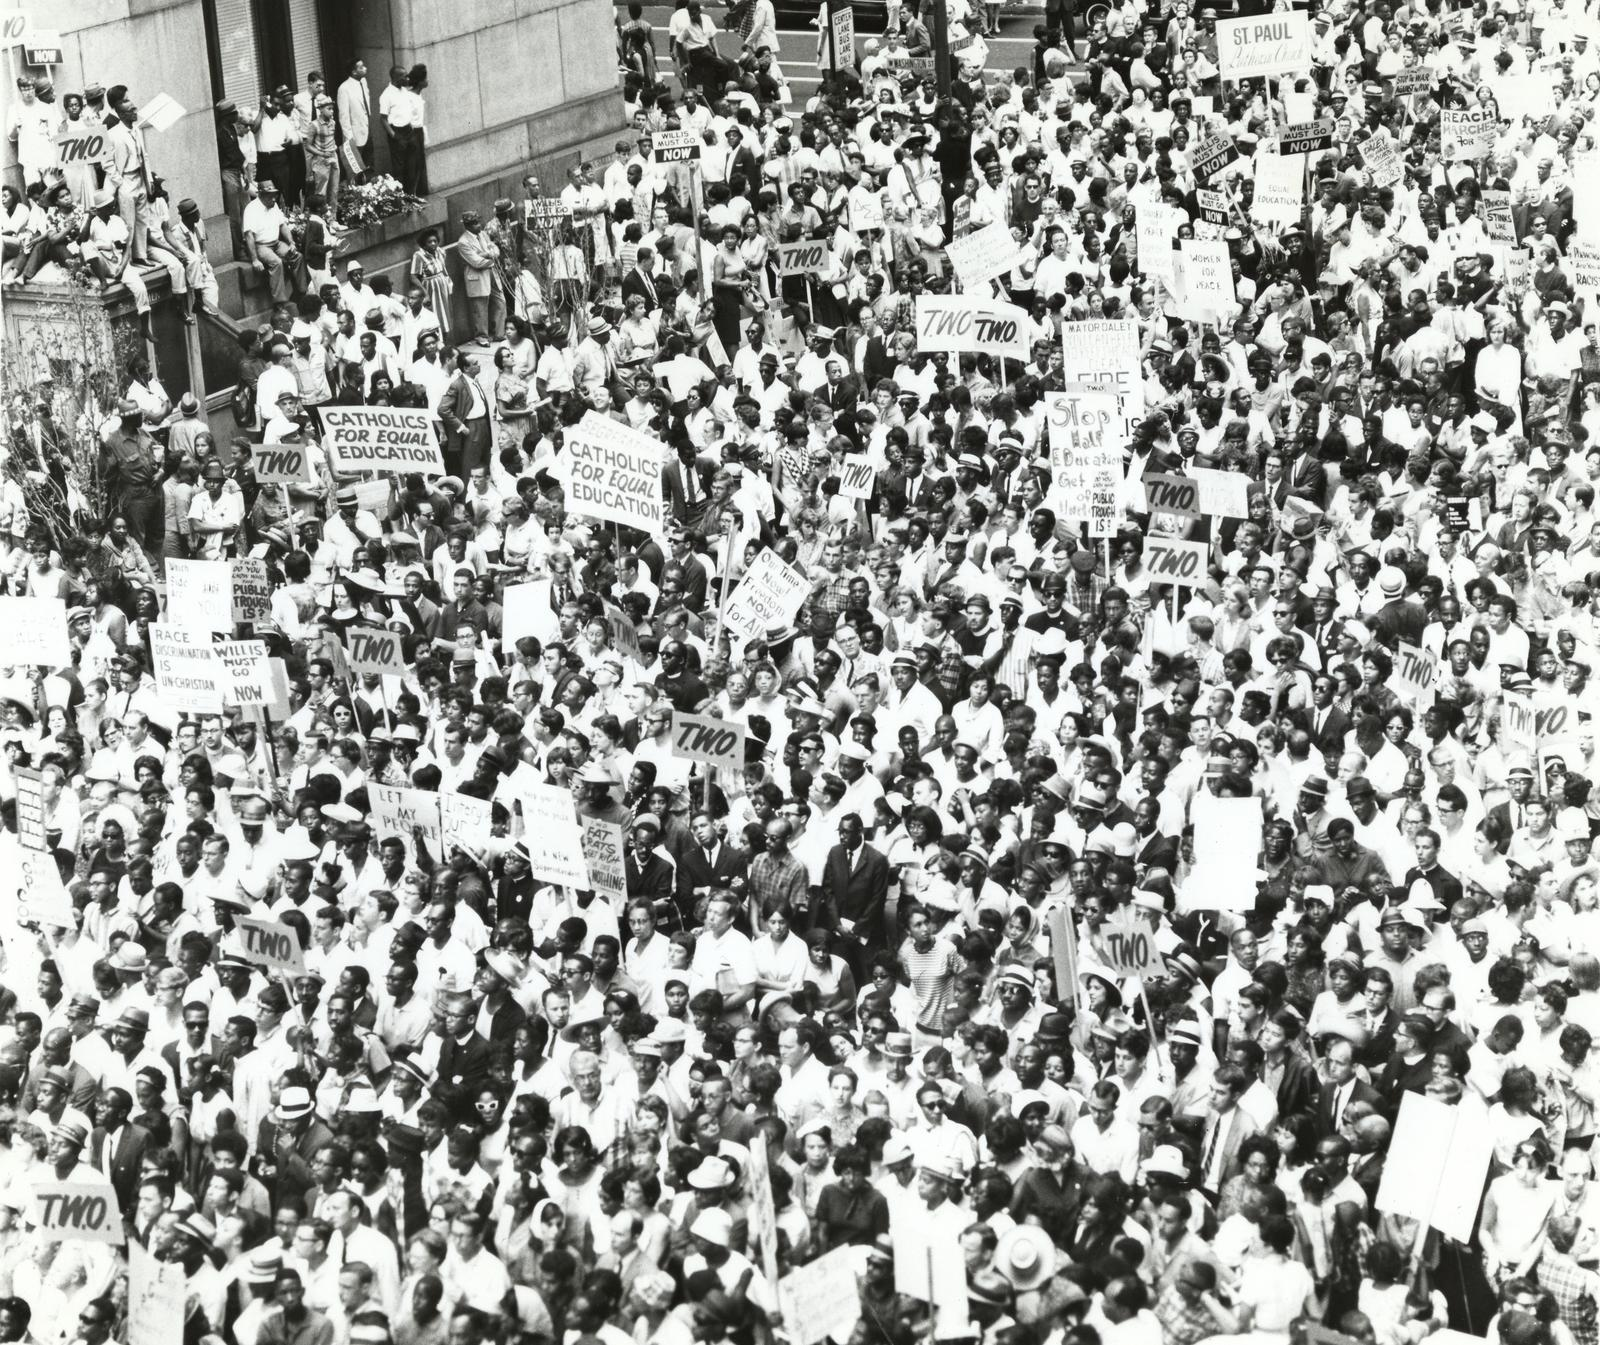 Image: Chicago Rally, date unknown. From the Chicago Urban League Photos collection, the University of Illinois at Chicago Special Collections and Archives.